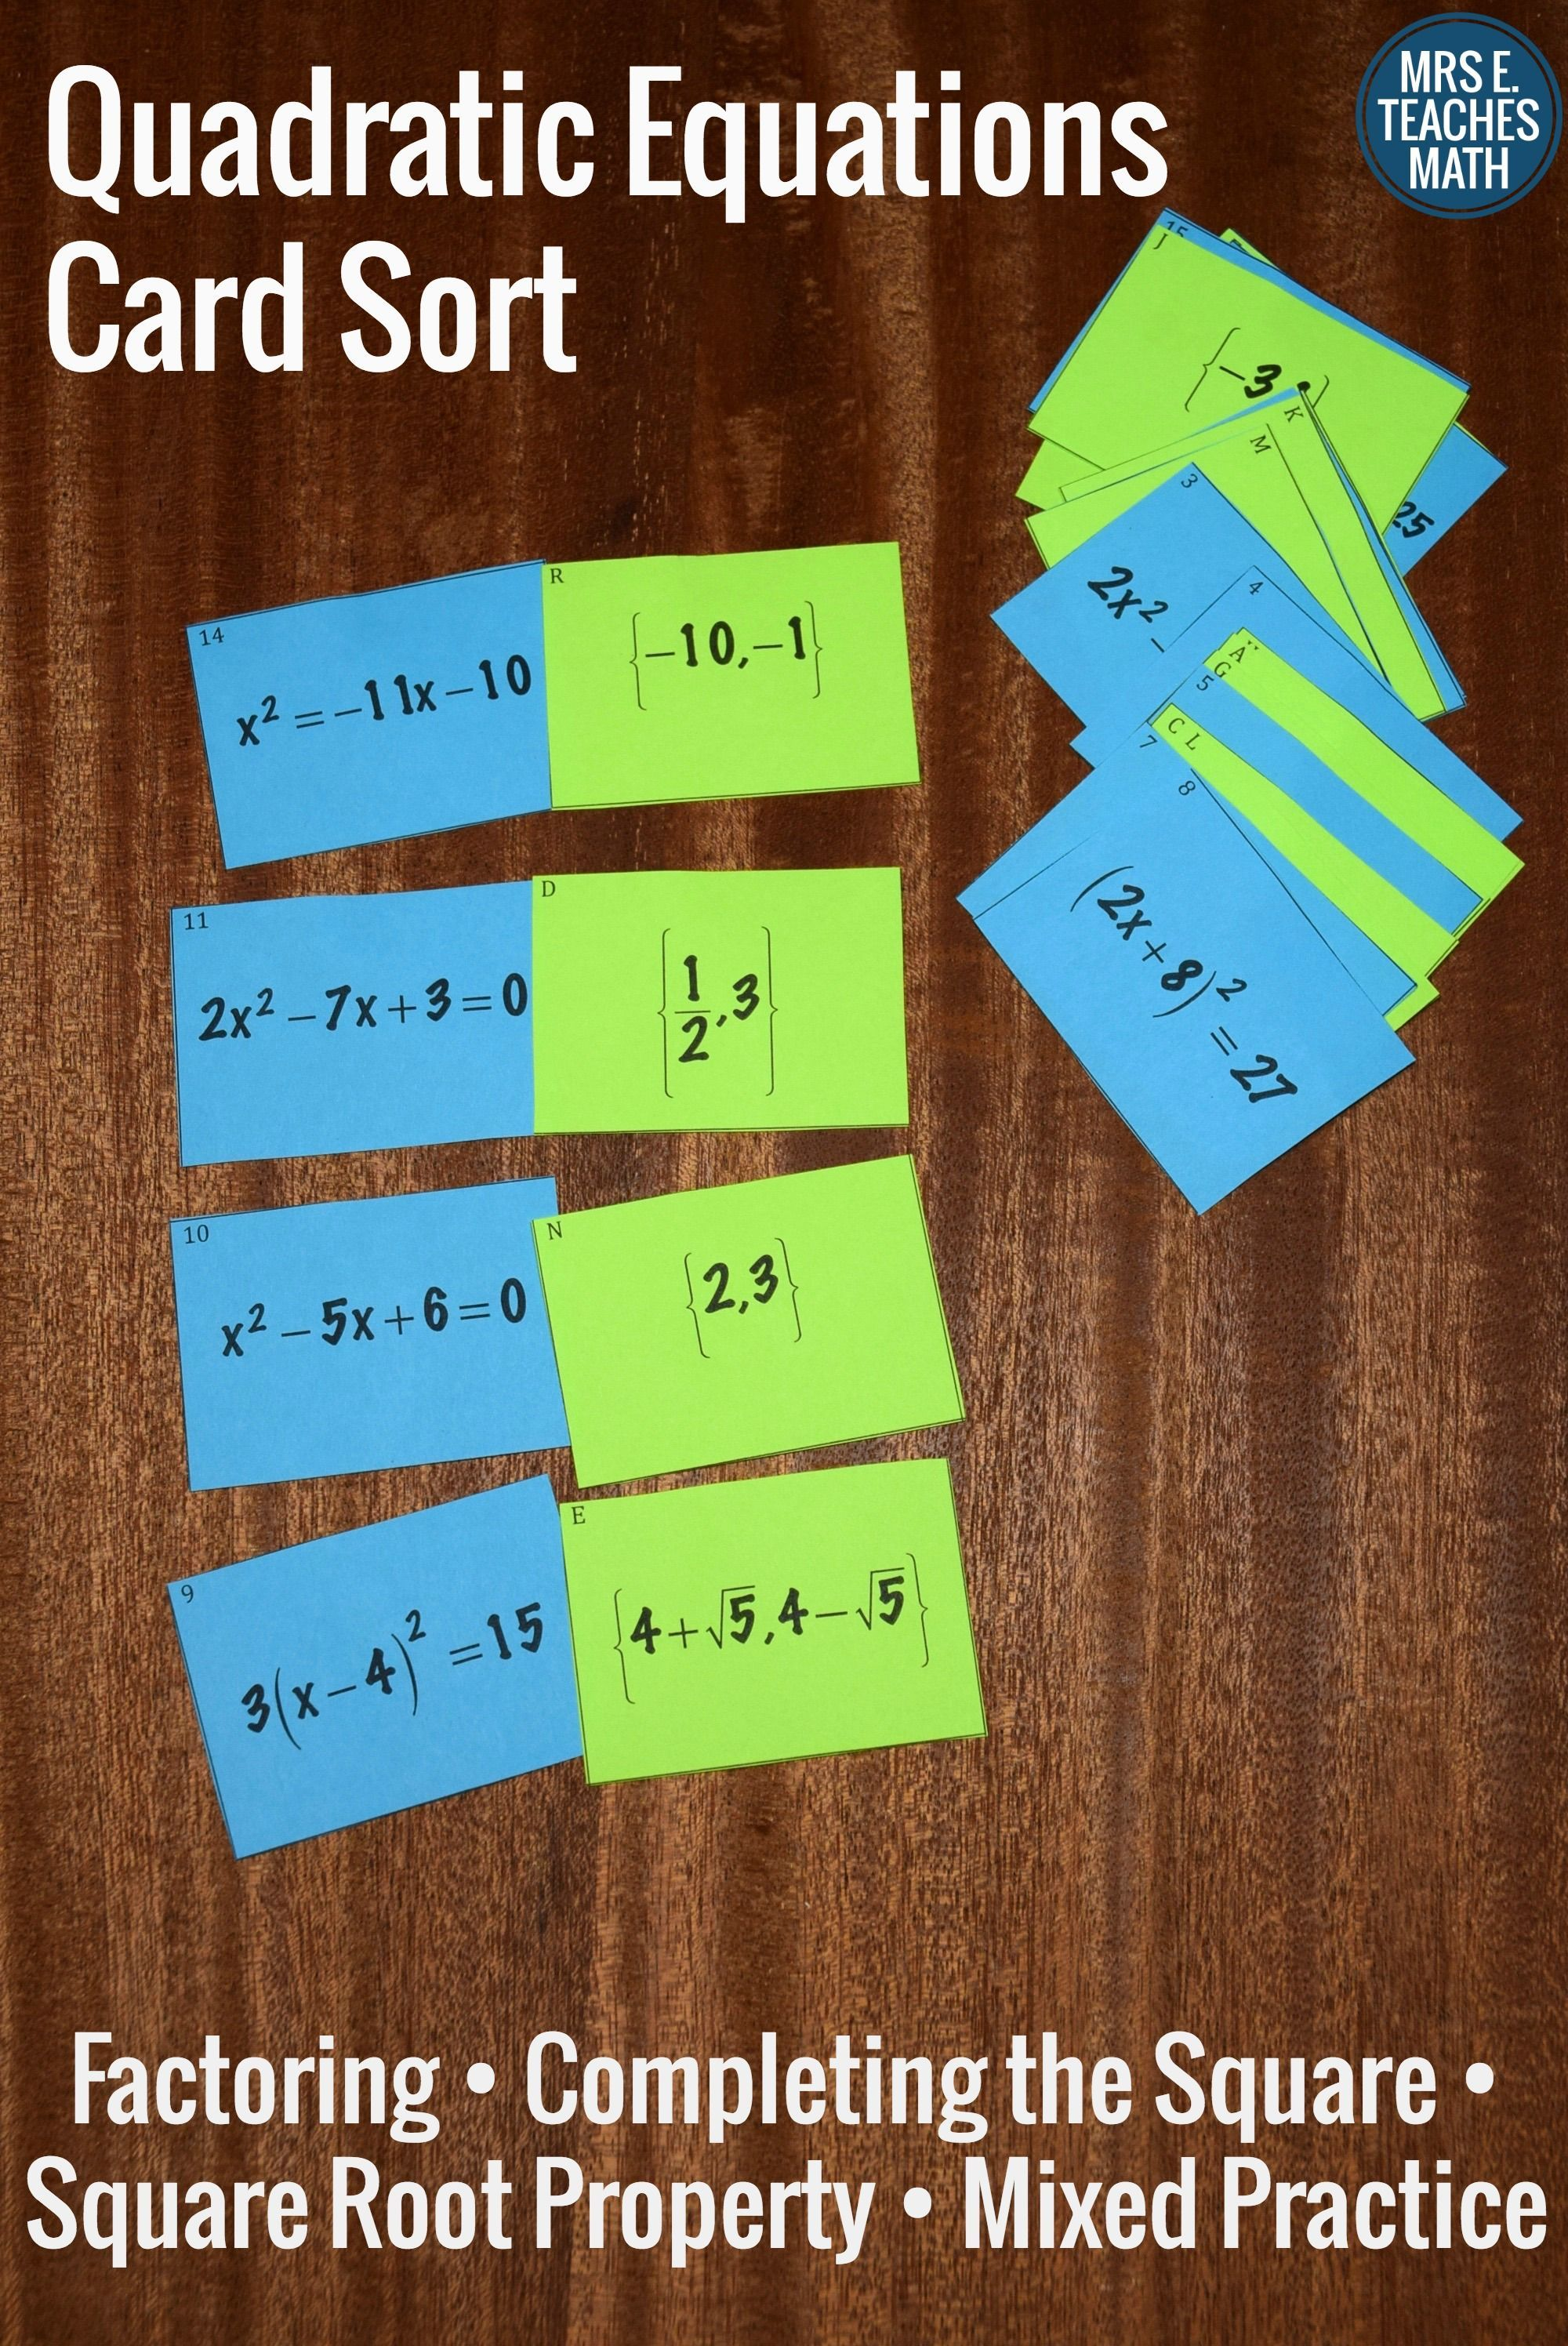 Quadratic Equations Card Sort